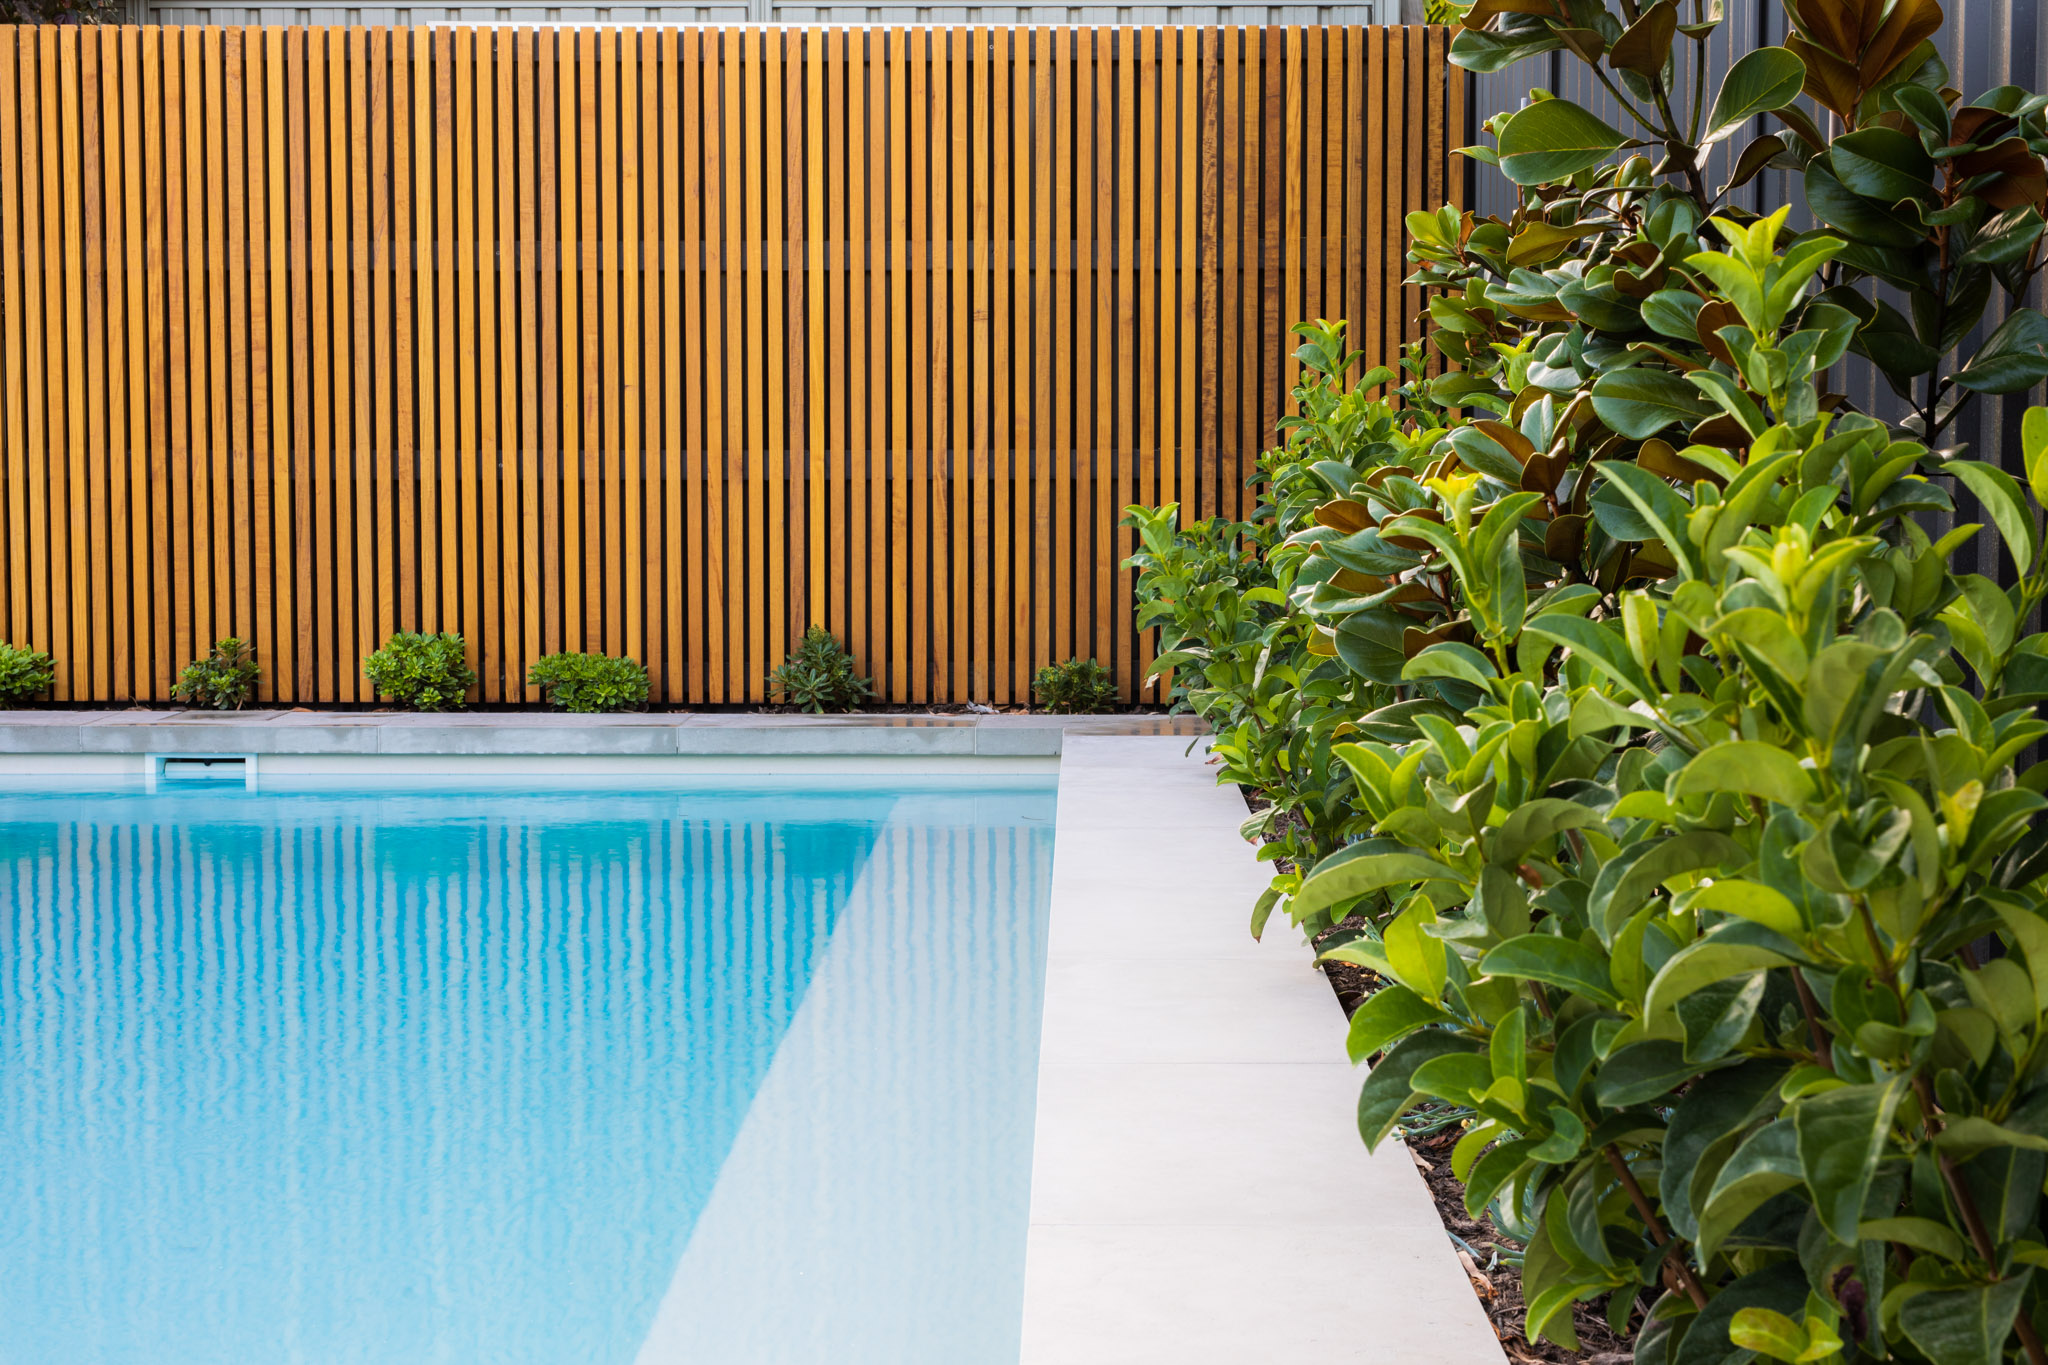 A pool with a wooden panel fence and shrubs